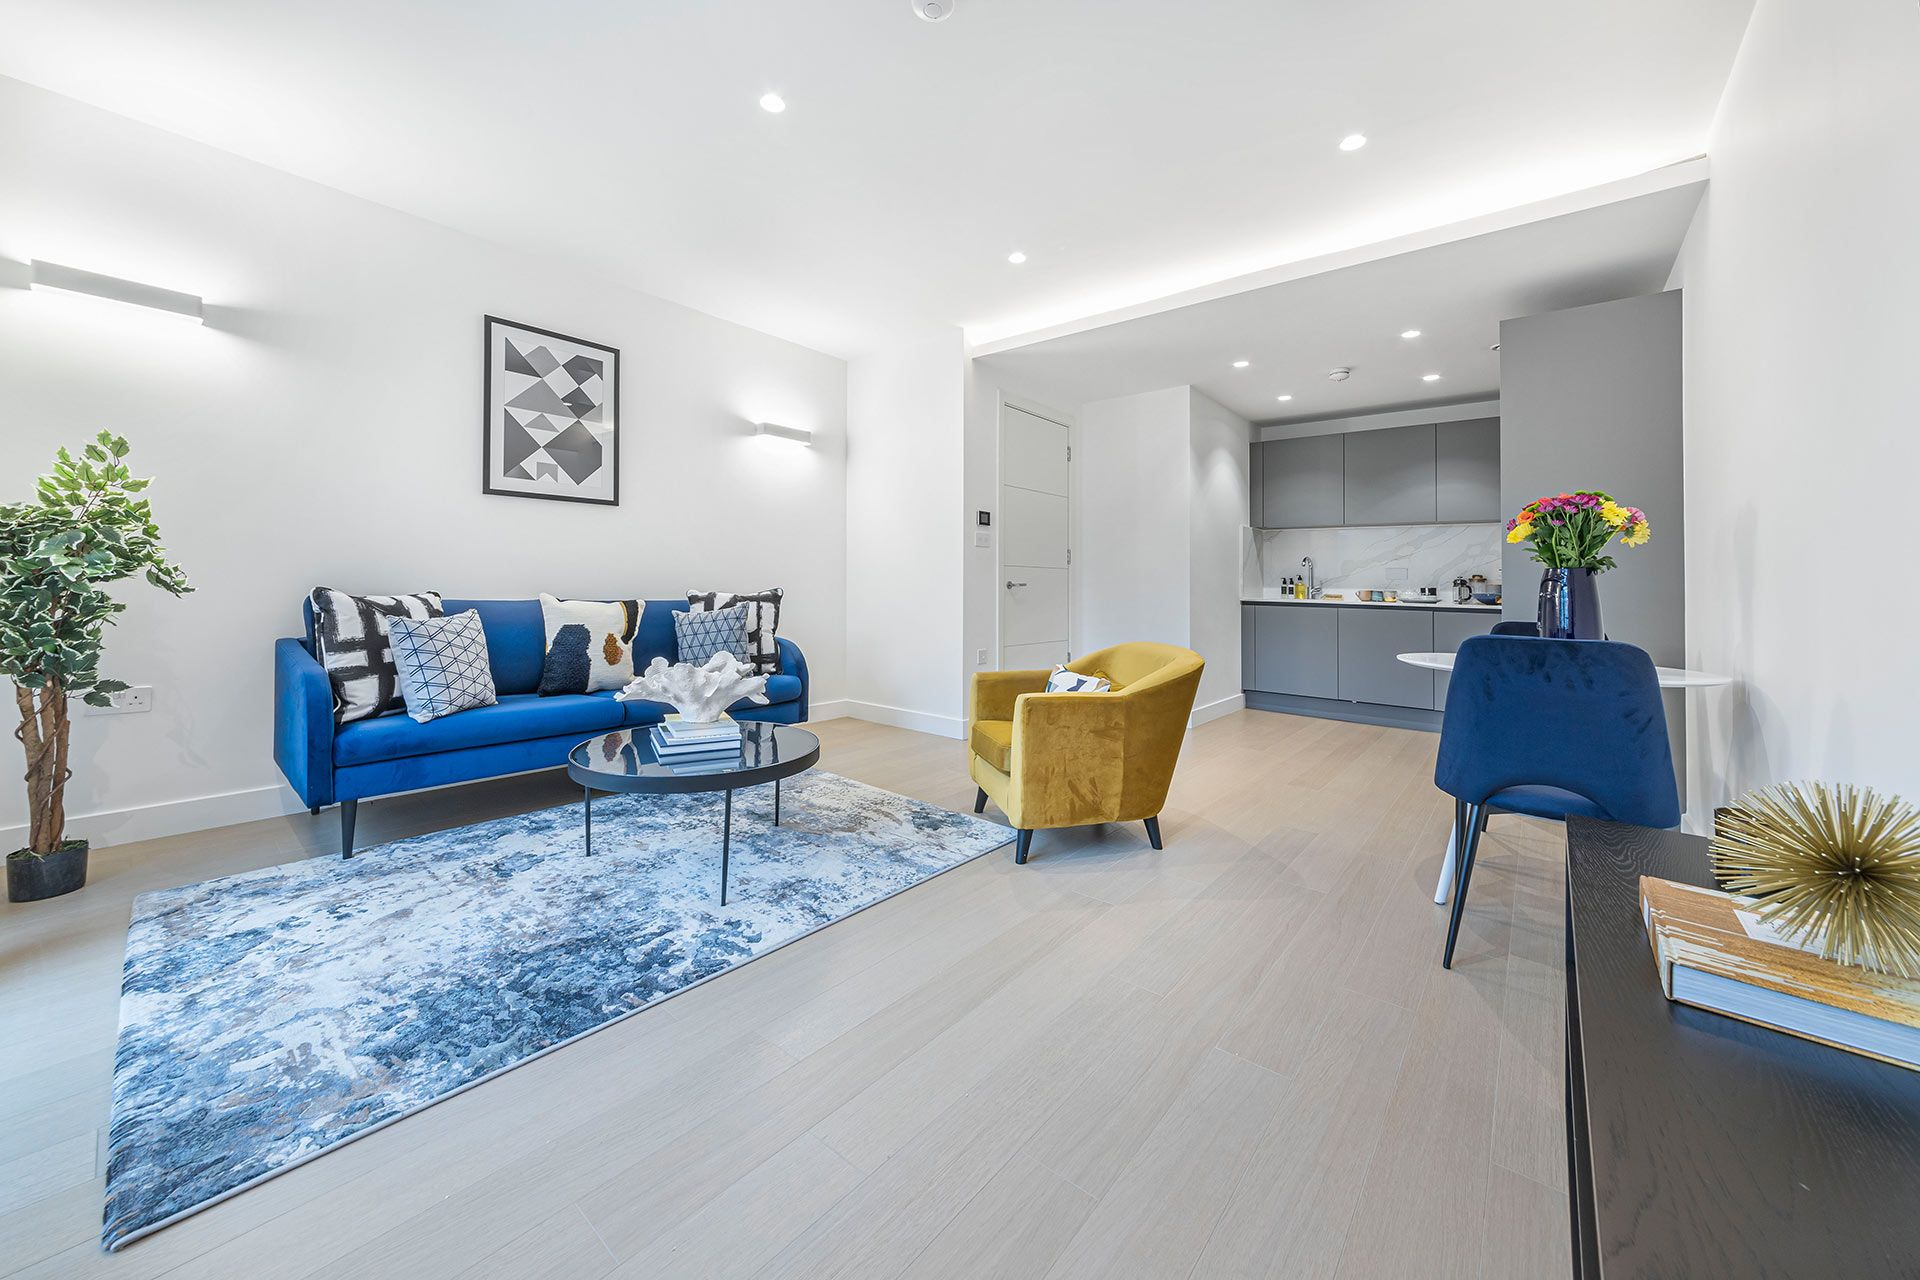 1 Bedroom apartment to rent in London SKI-VH-0060